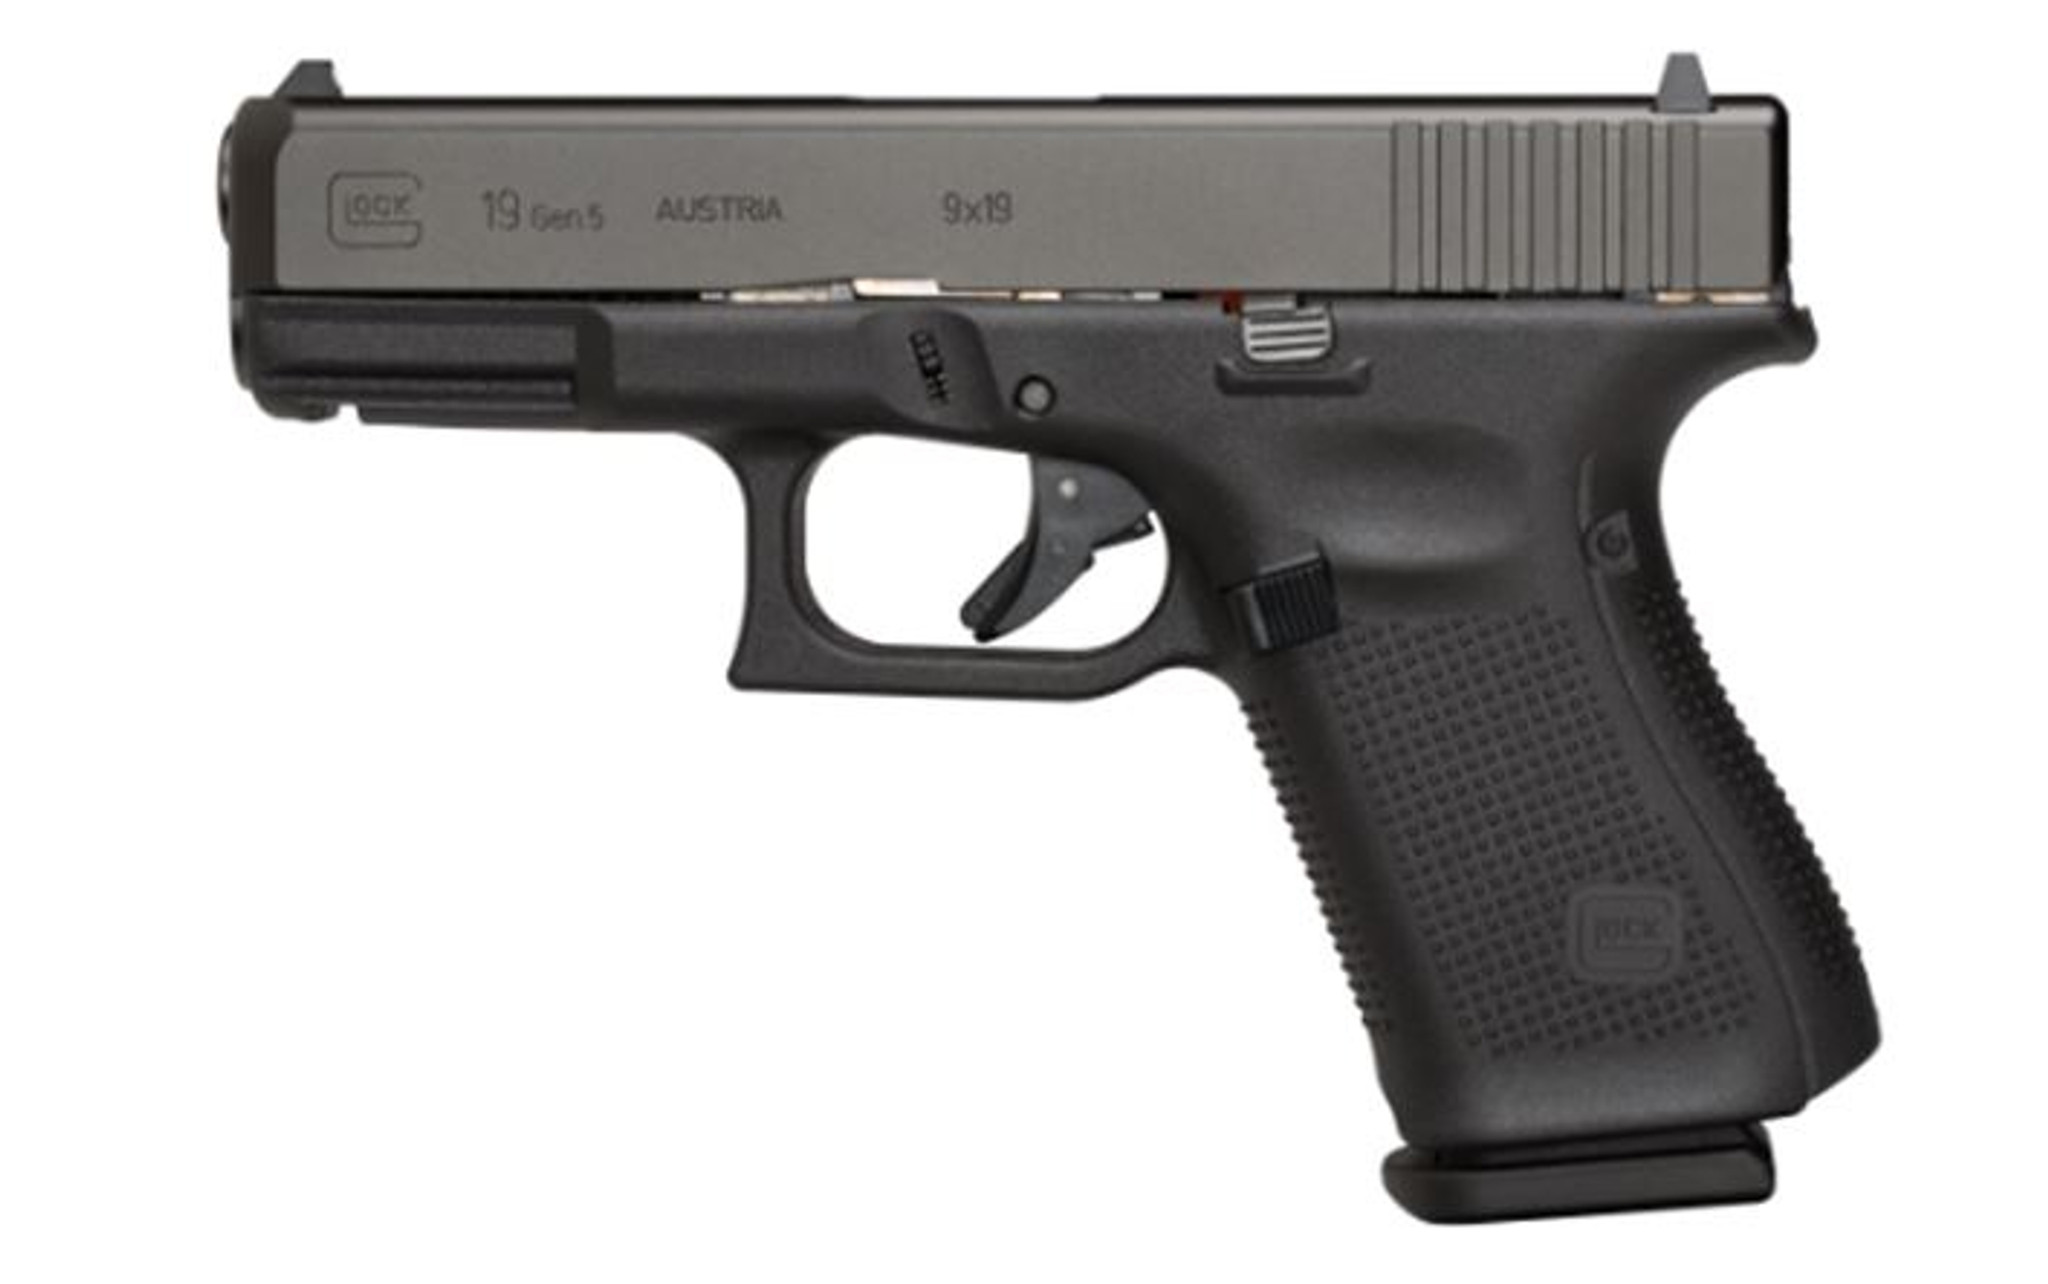 New Custom Holster Options: Glock 40 MOS with TLR-1, Glock gen 5 & more!